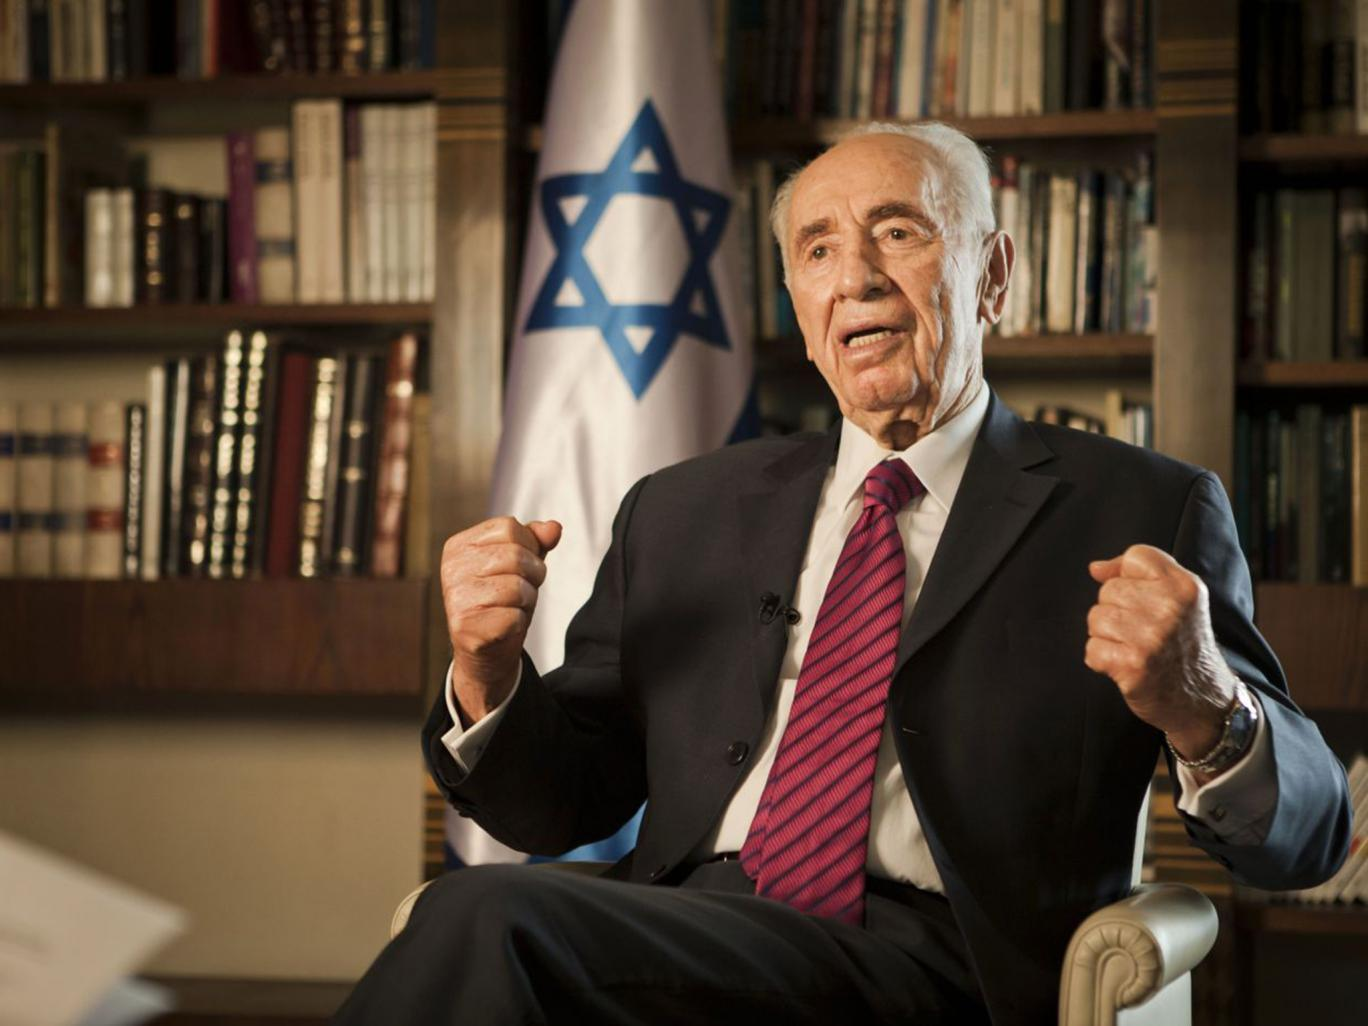 Shimon Peres was no peacemaker. I'll never forget the sight of pouring blood and burning bodies at Qana